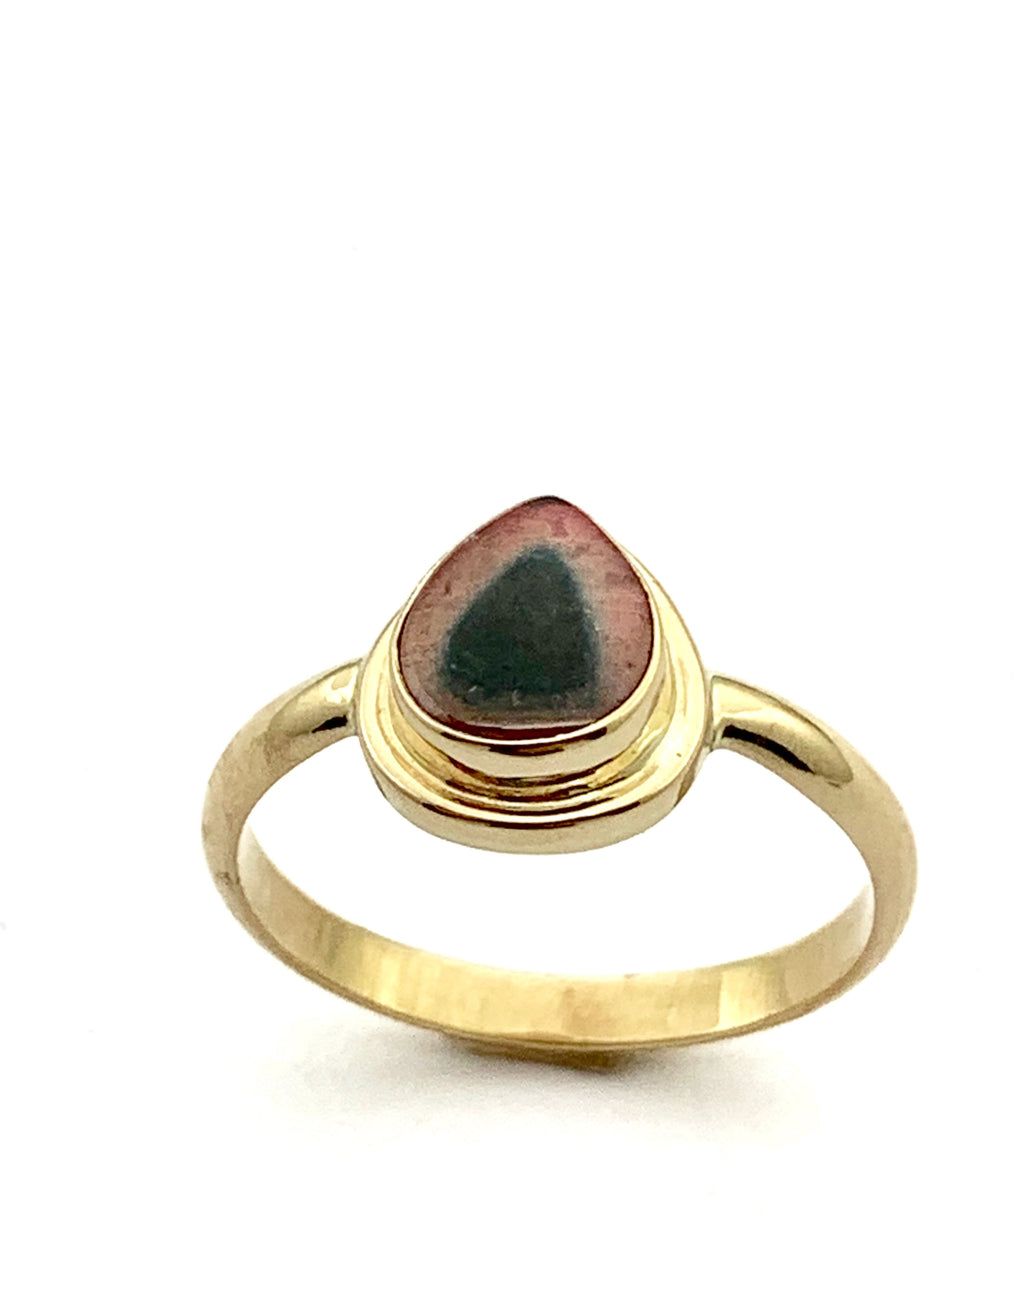 Watermelon Tourmaline Ring in 14k Gold,October Birthstone Ring, Tourmaline Statement Ring, Womens Gold Ring With Gemstone, Stacking ring